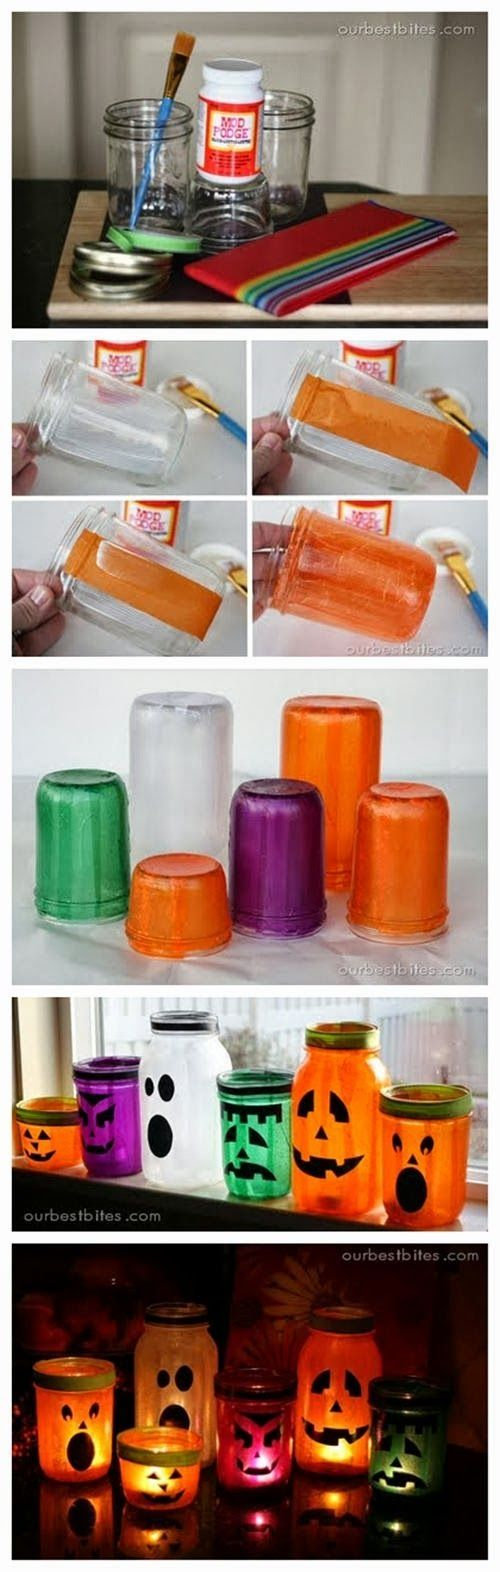 Great mason jar idea - try to make this #craft on your own - halloween jar ideas